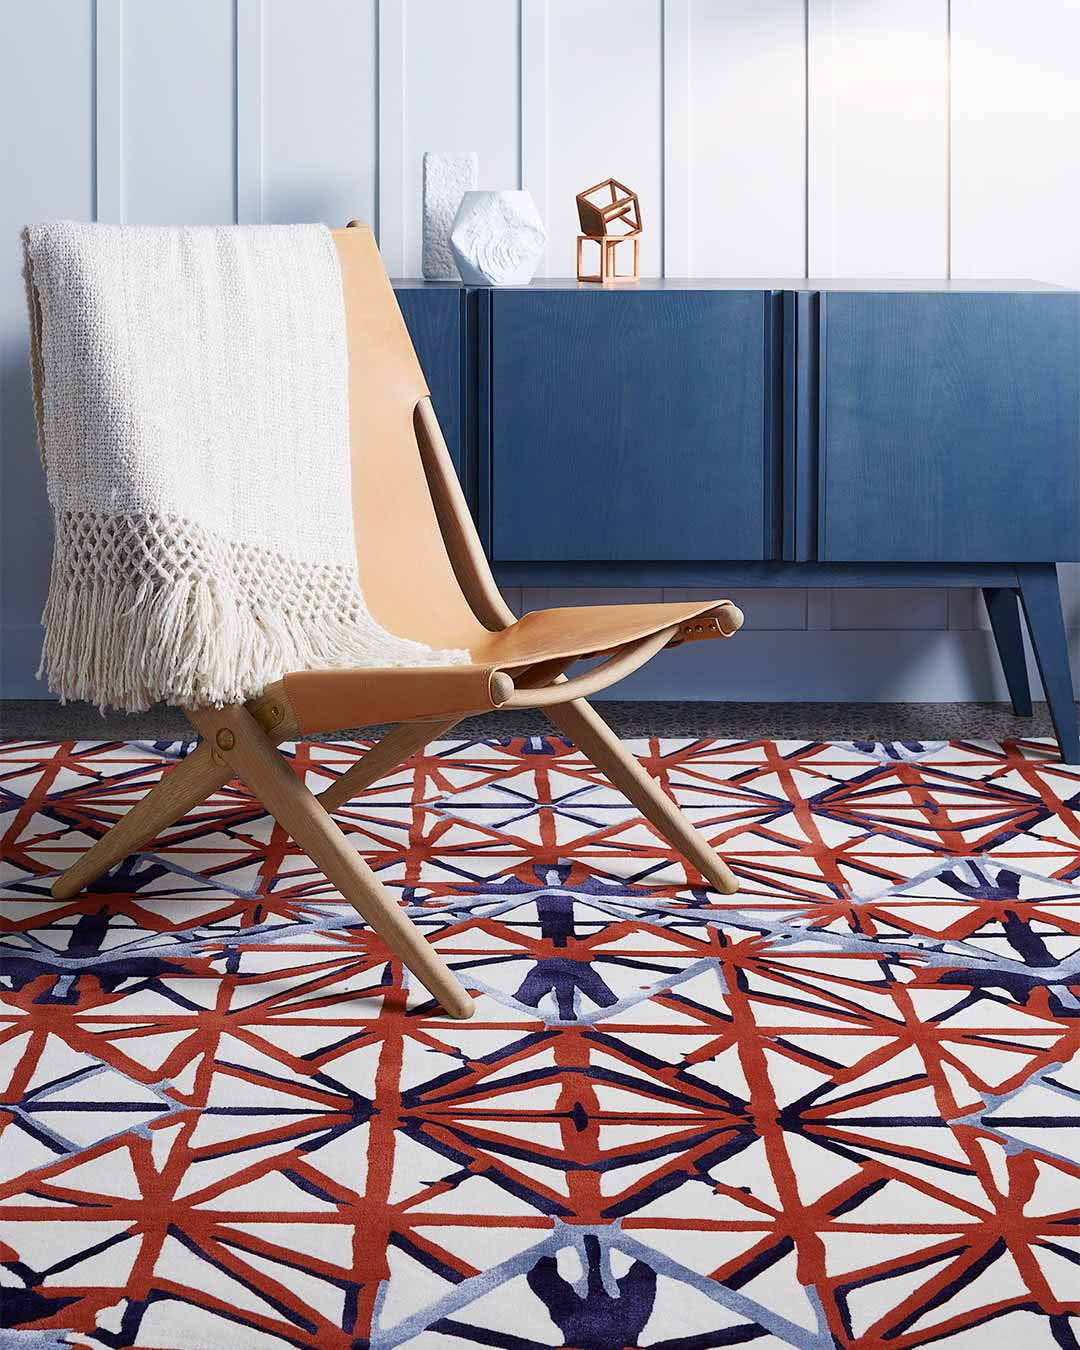 Living room setting of our modern, geometrically patterned Attic rug in charcoal